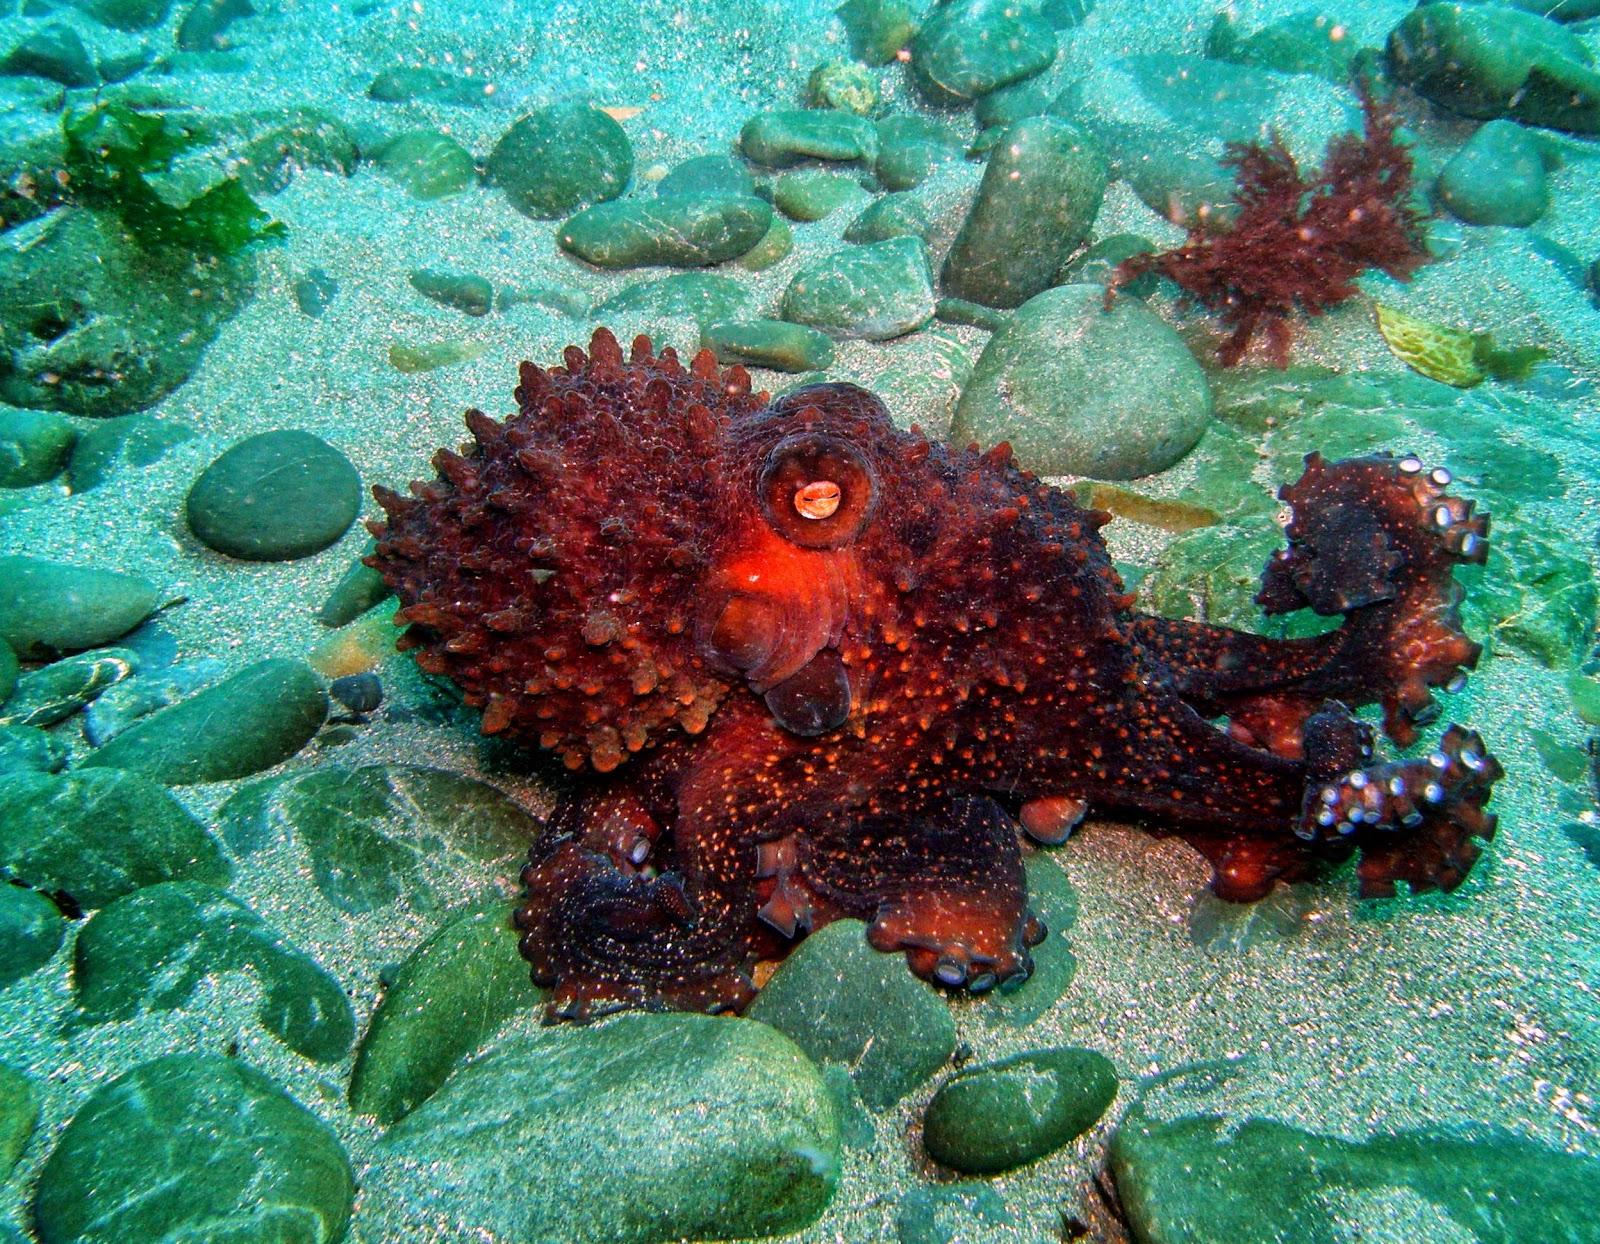 Octopus Hd Wallpapers Earth Blog